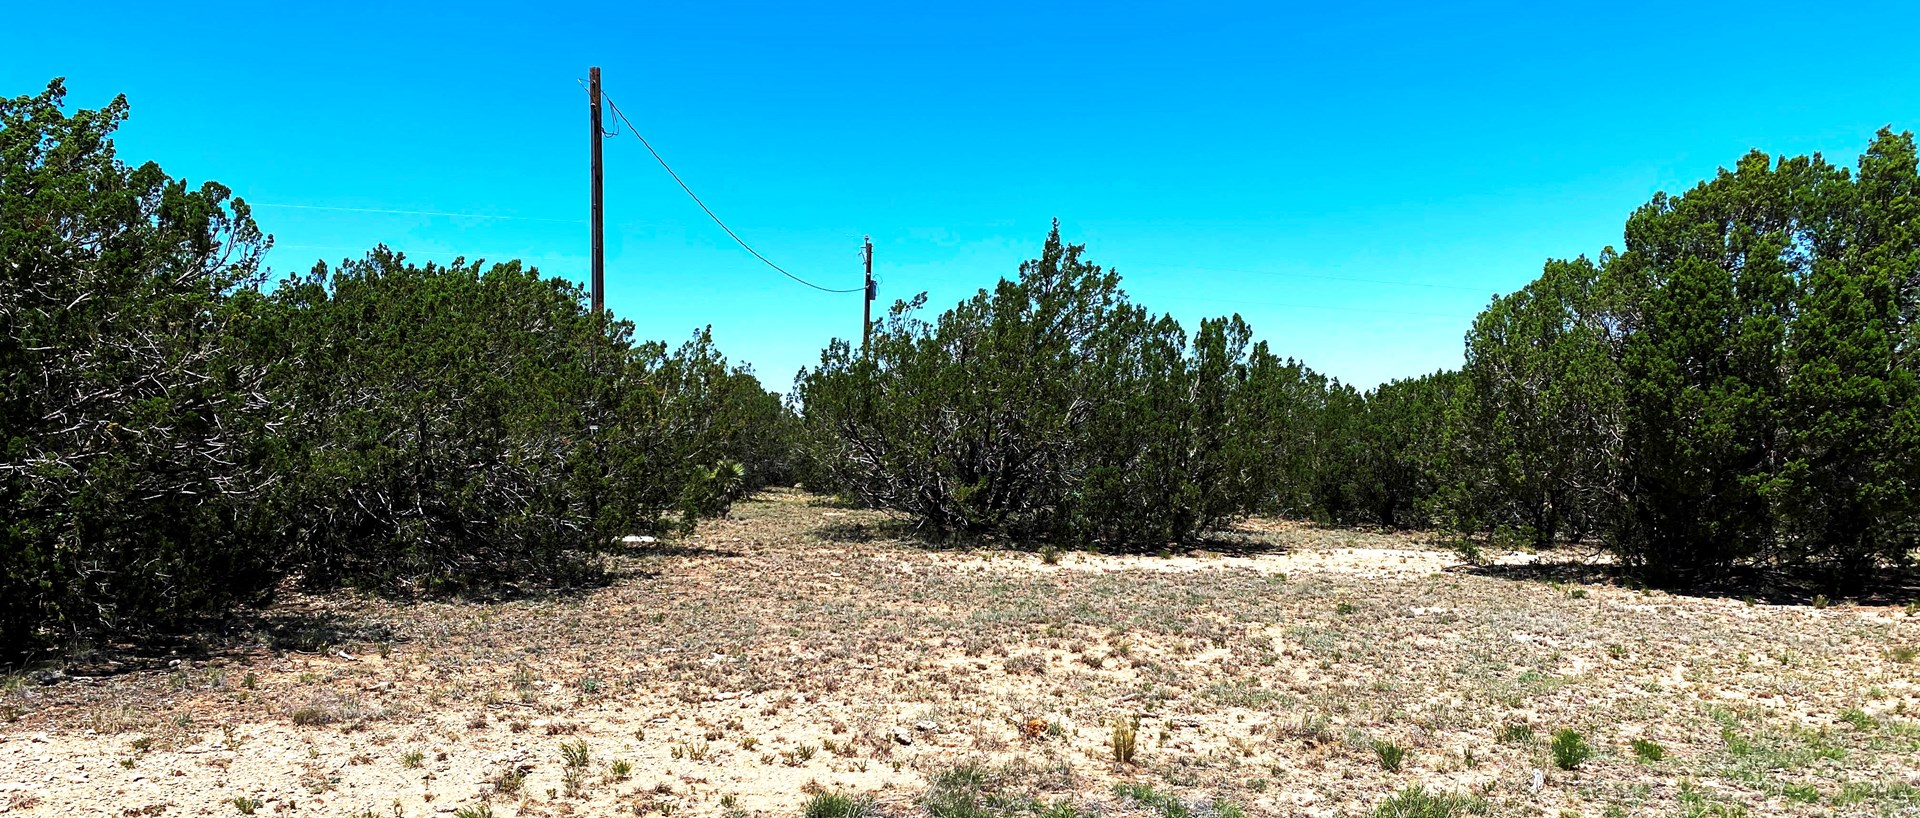 Mountain Property for Sale In Queen, NM